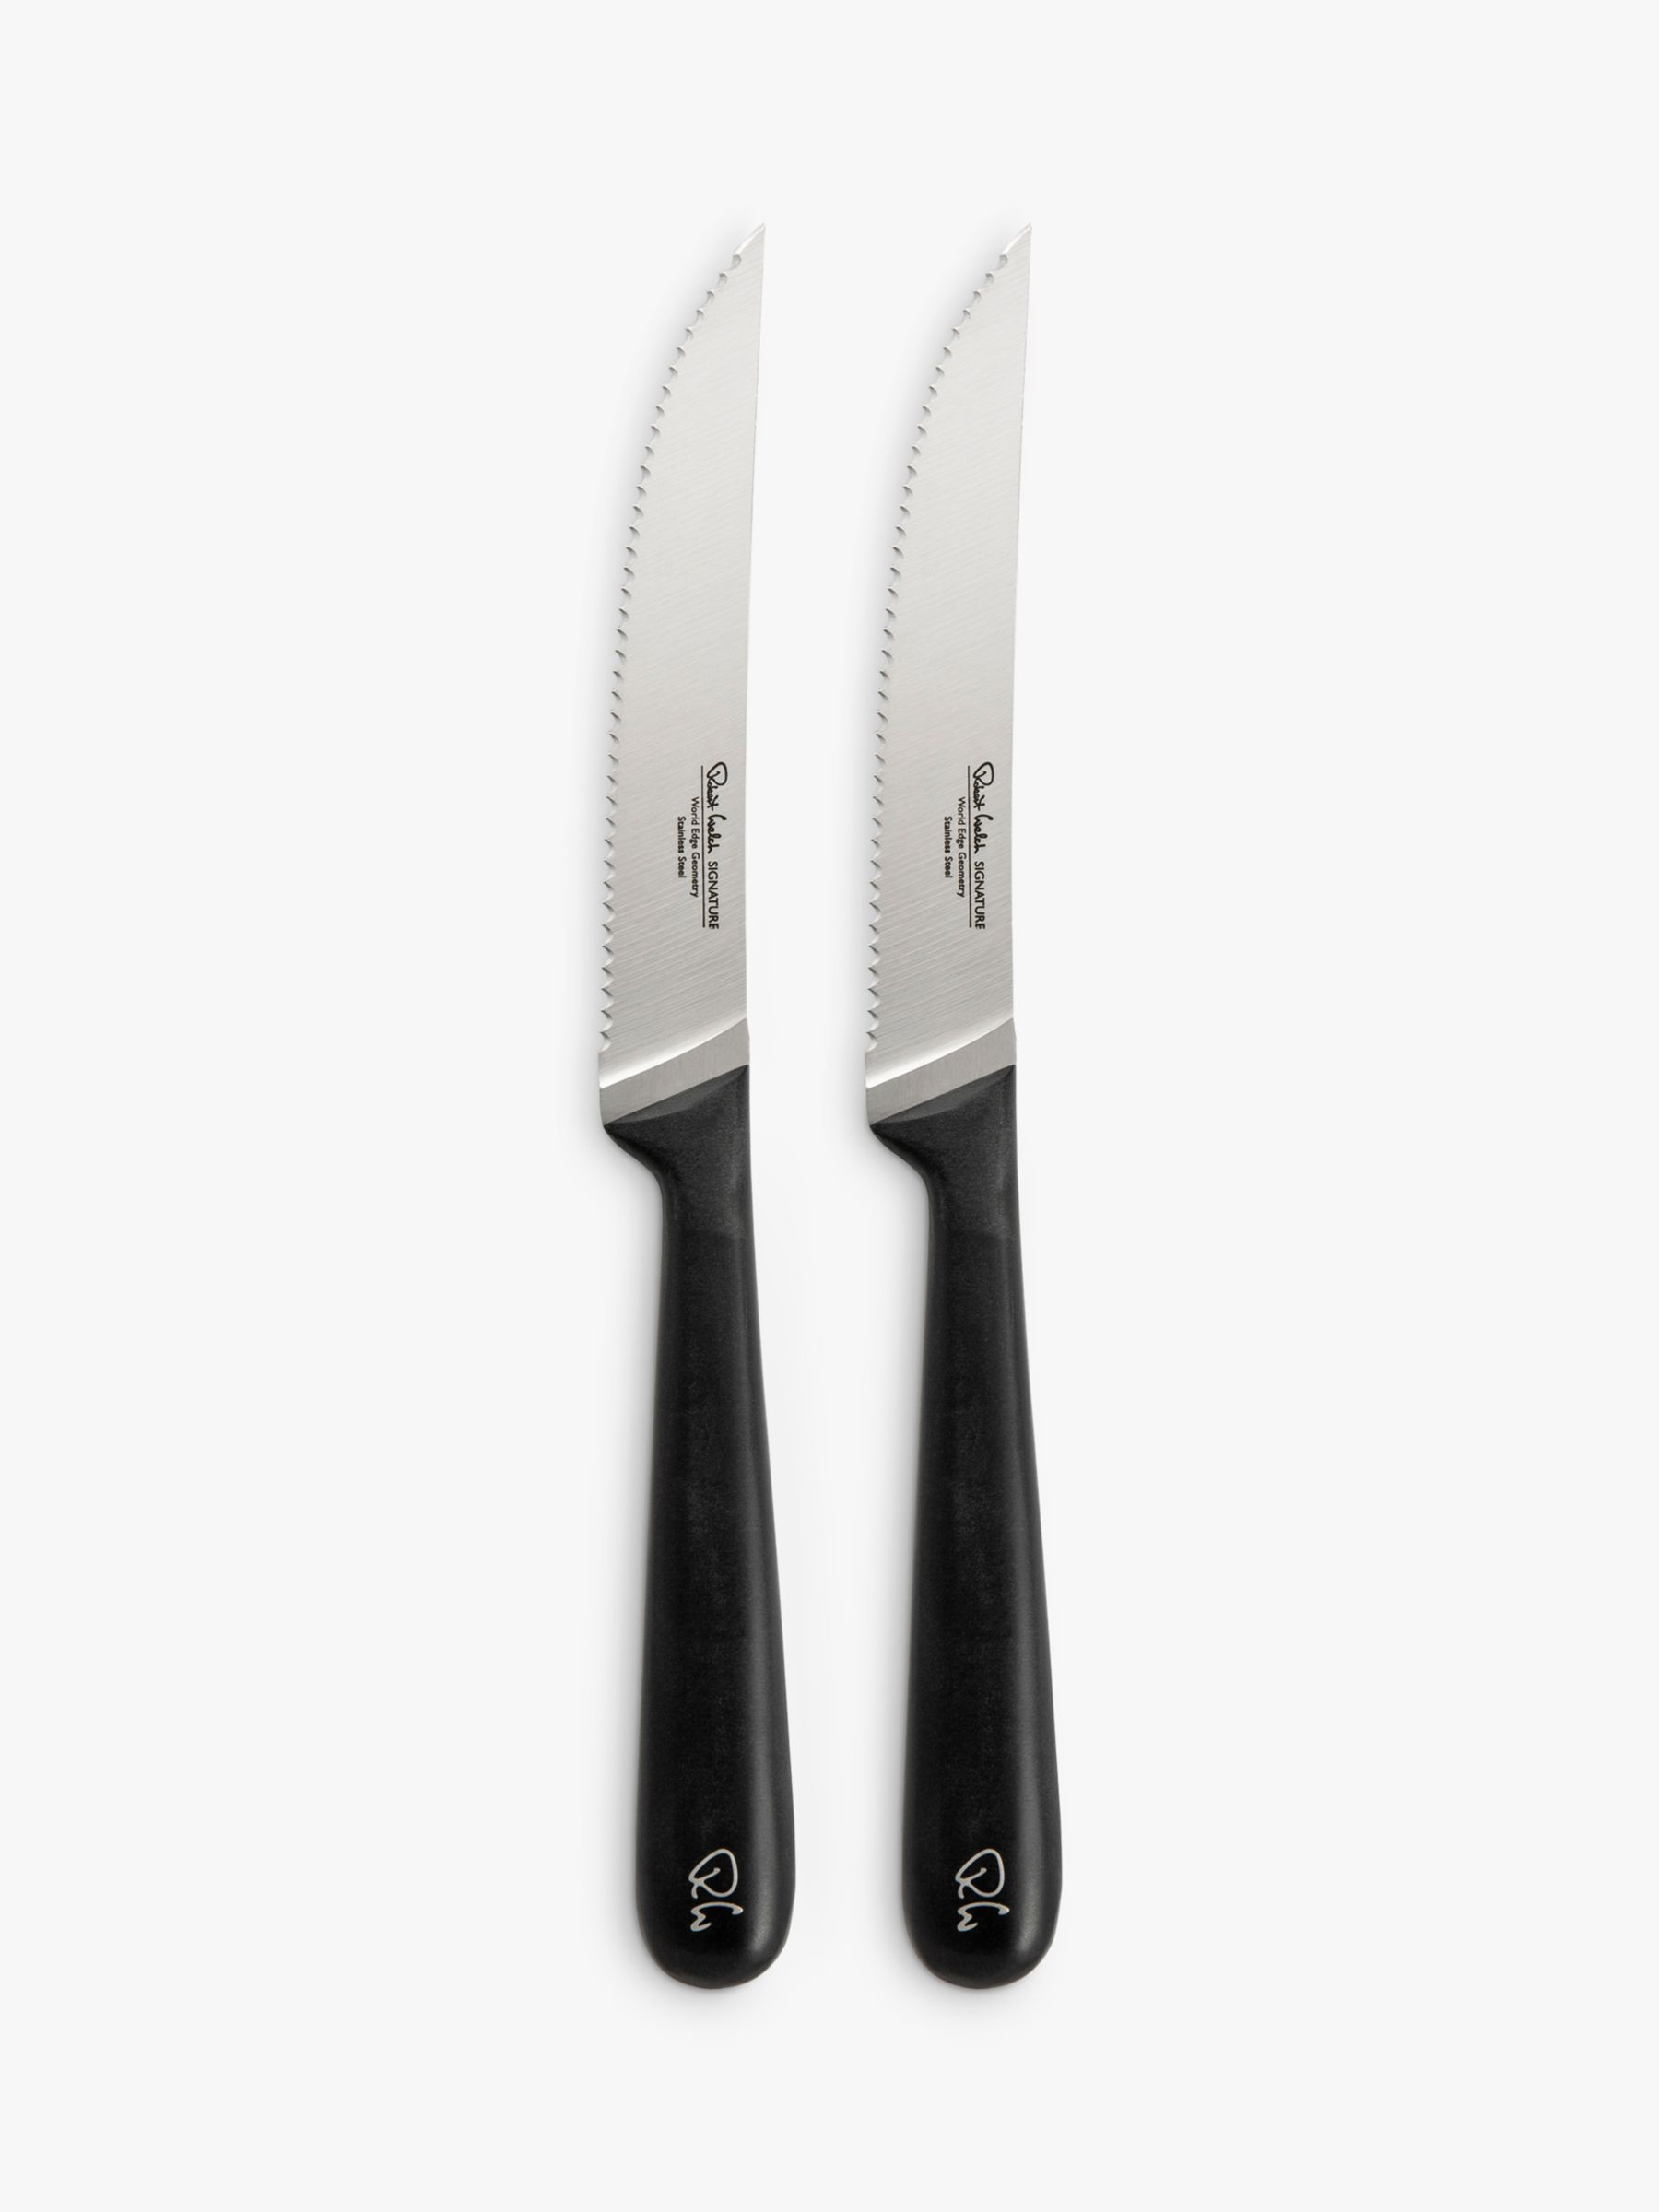 Robert Welch Signature Stainless Steel Serrated Steak Knives, Set of 2, 15cm